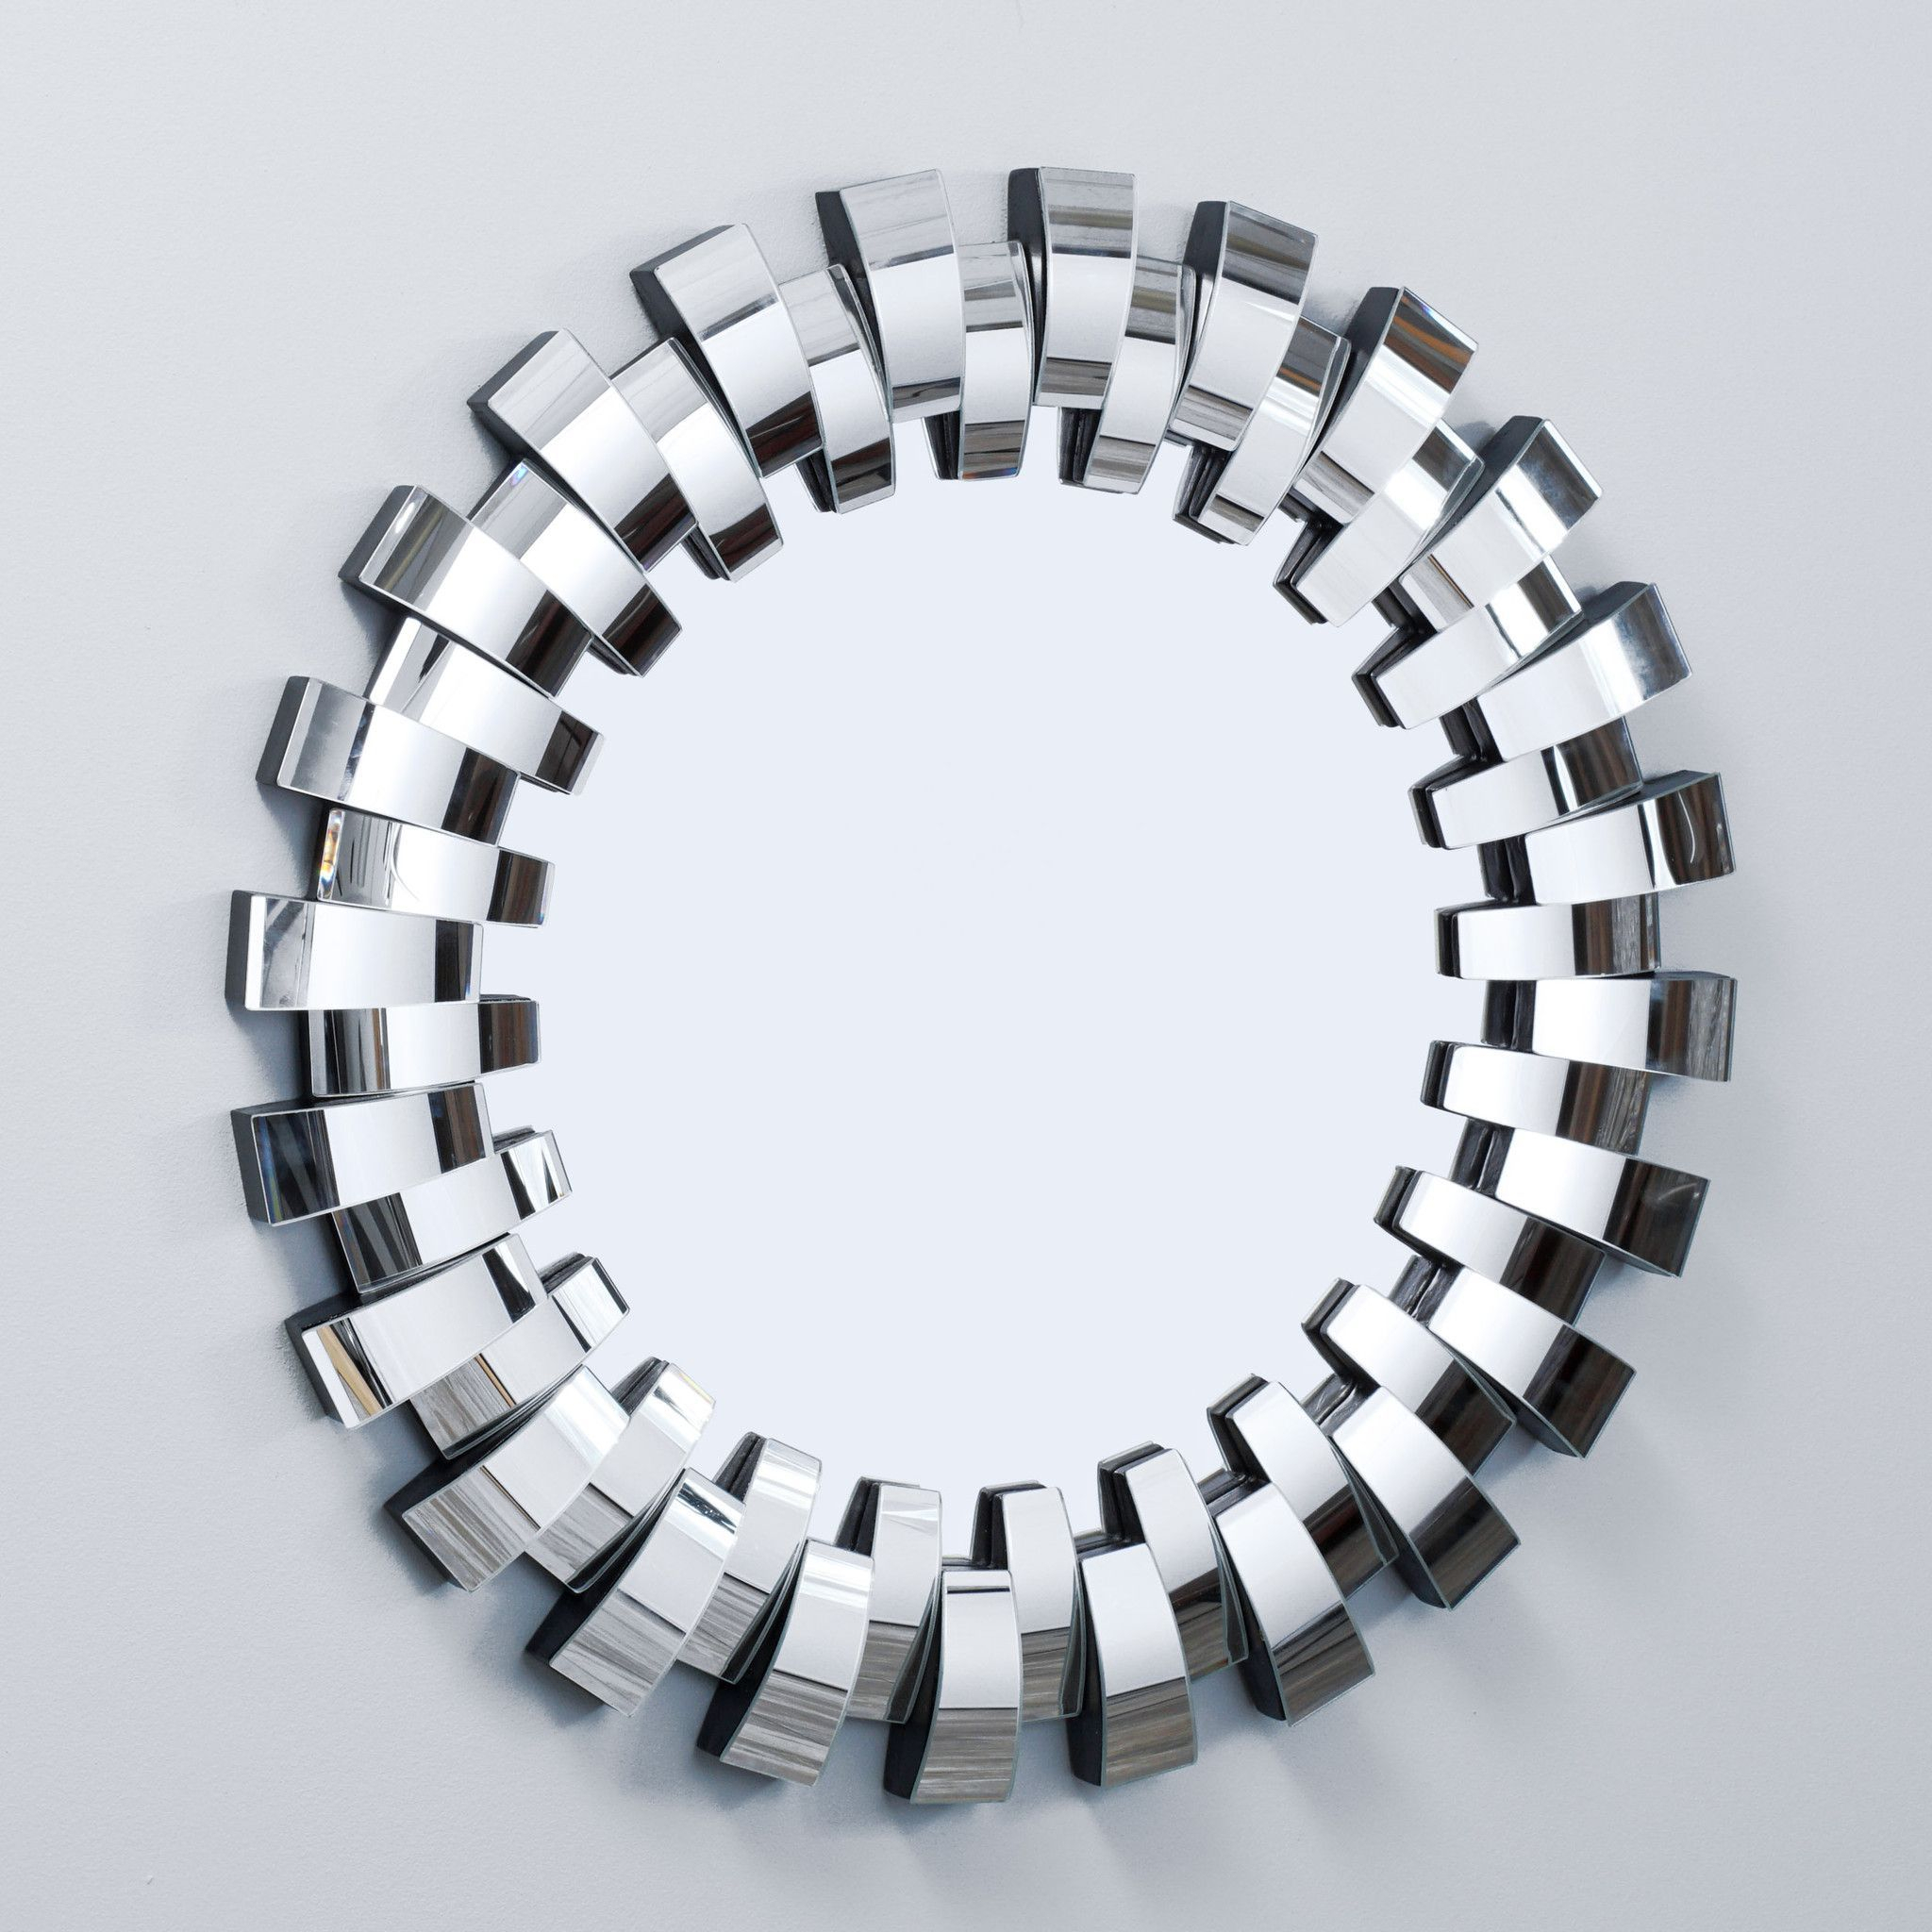 Grande Round Curved Mirror | Fav In 2019 | Home Decor Pertaining To Deniece Sunburst Round Wall Mirrors (View 12 of 30)